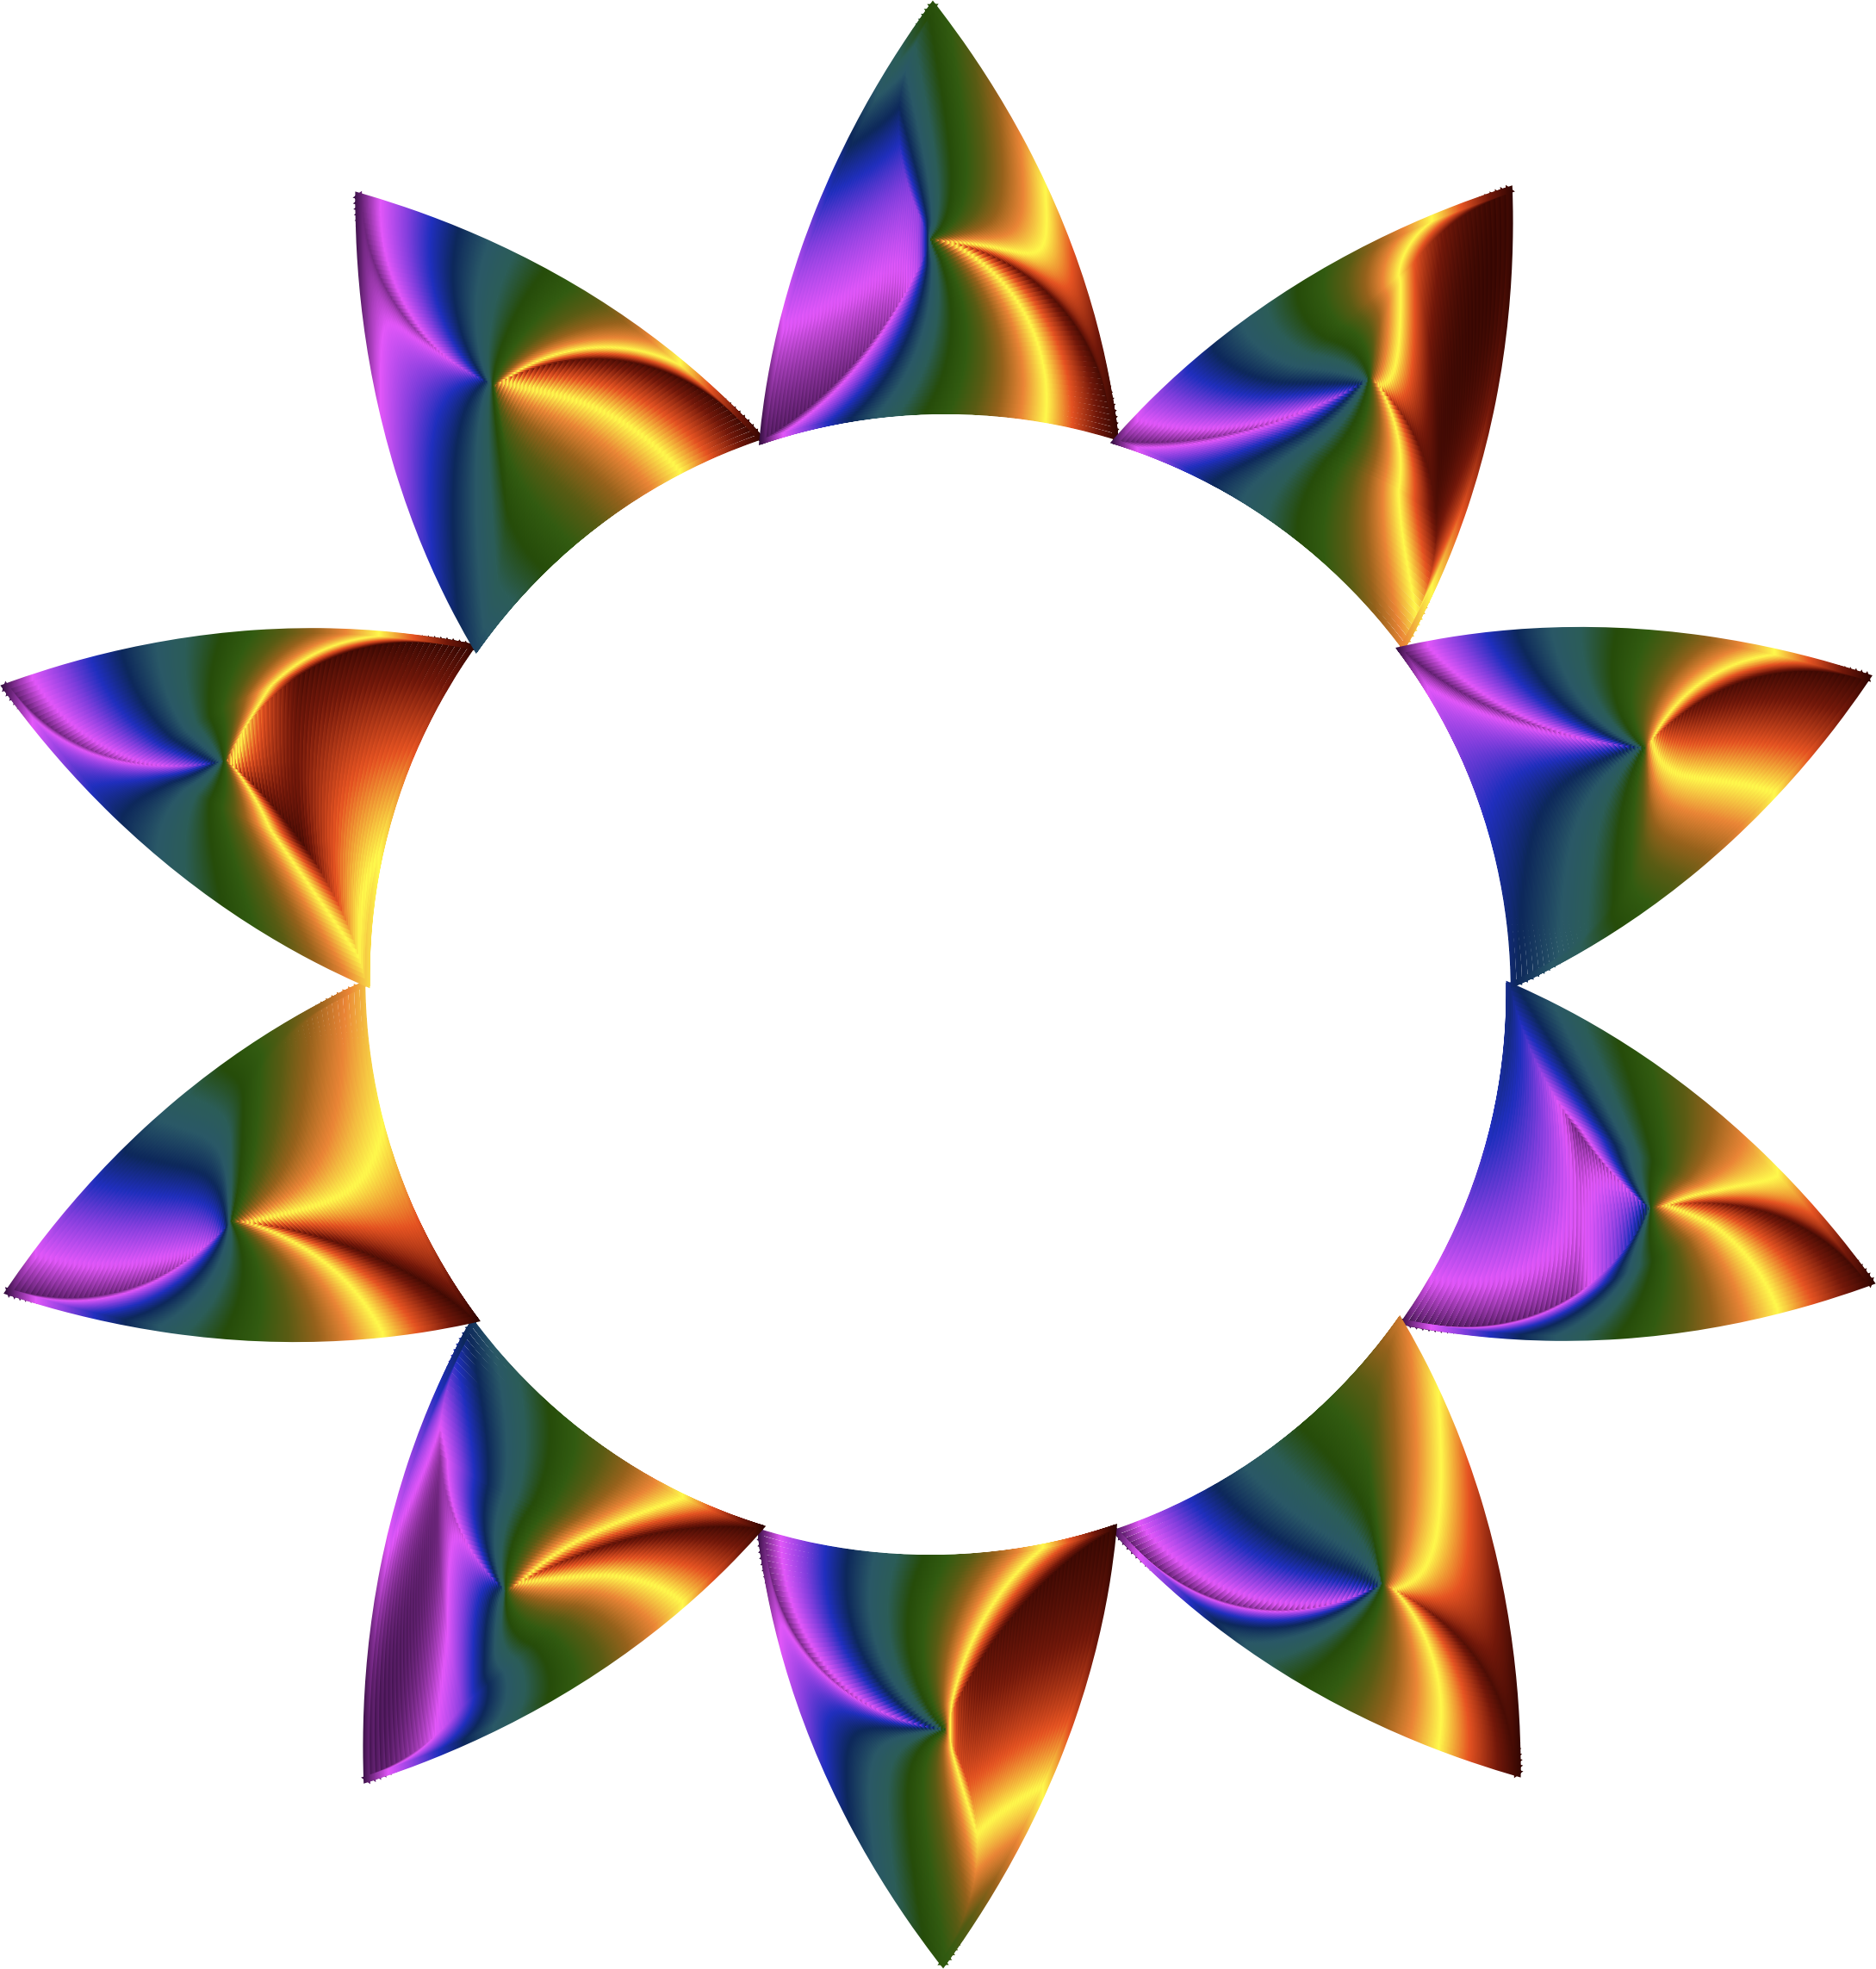 Sun line clipart vector royalty free download Clipart - Prismatic Sun Line Art No Background vector royalty free download